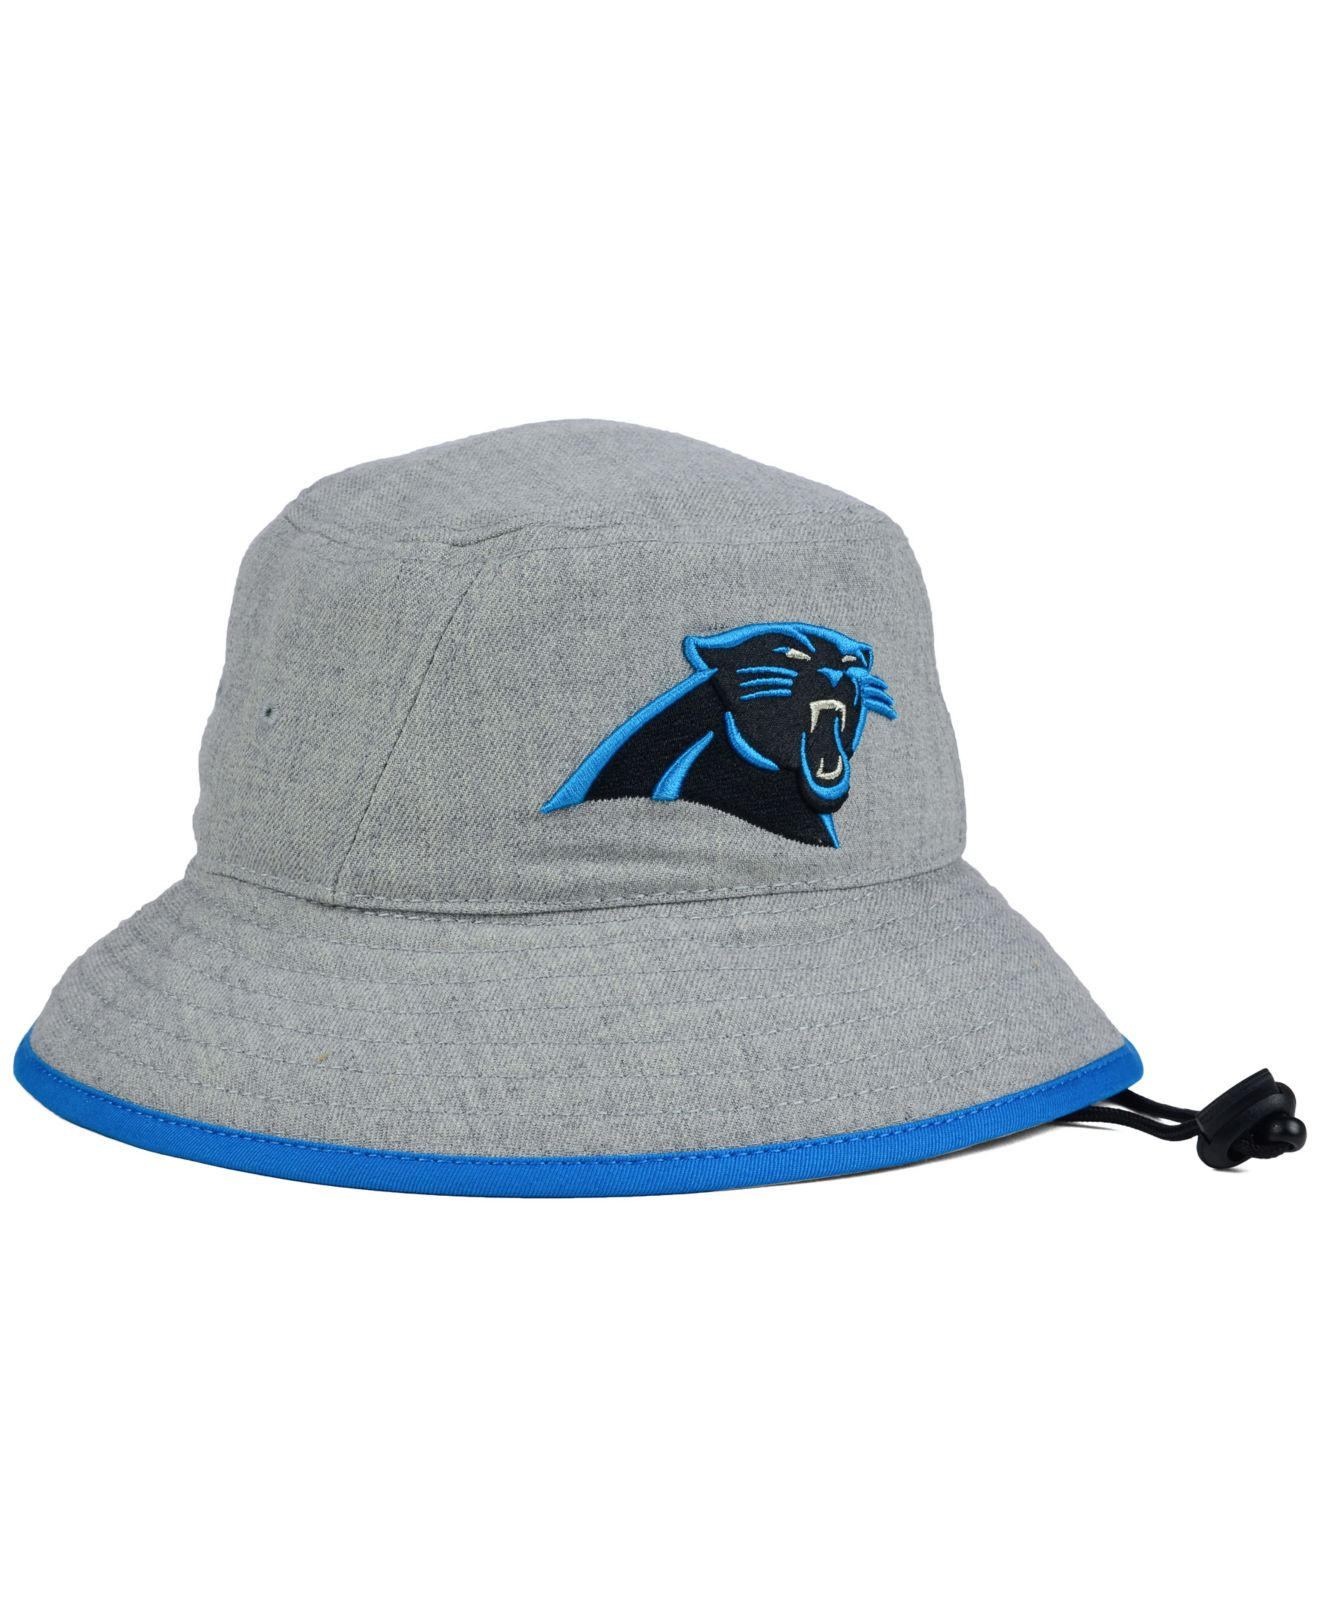 93d4d528835b2 ... czech lyst ktz carolina panthers nfl heather gray bucket hat in gray  for men 64566 2cf06